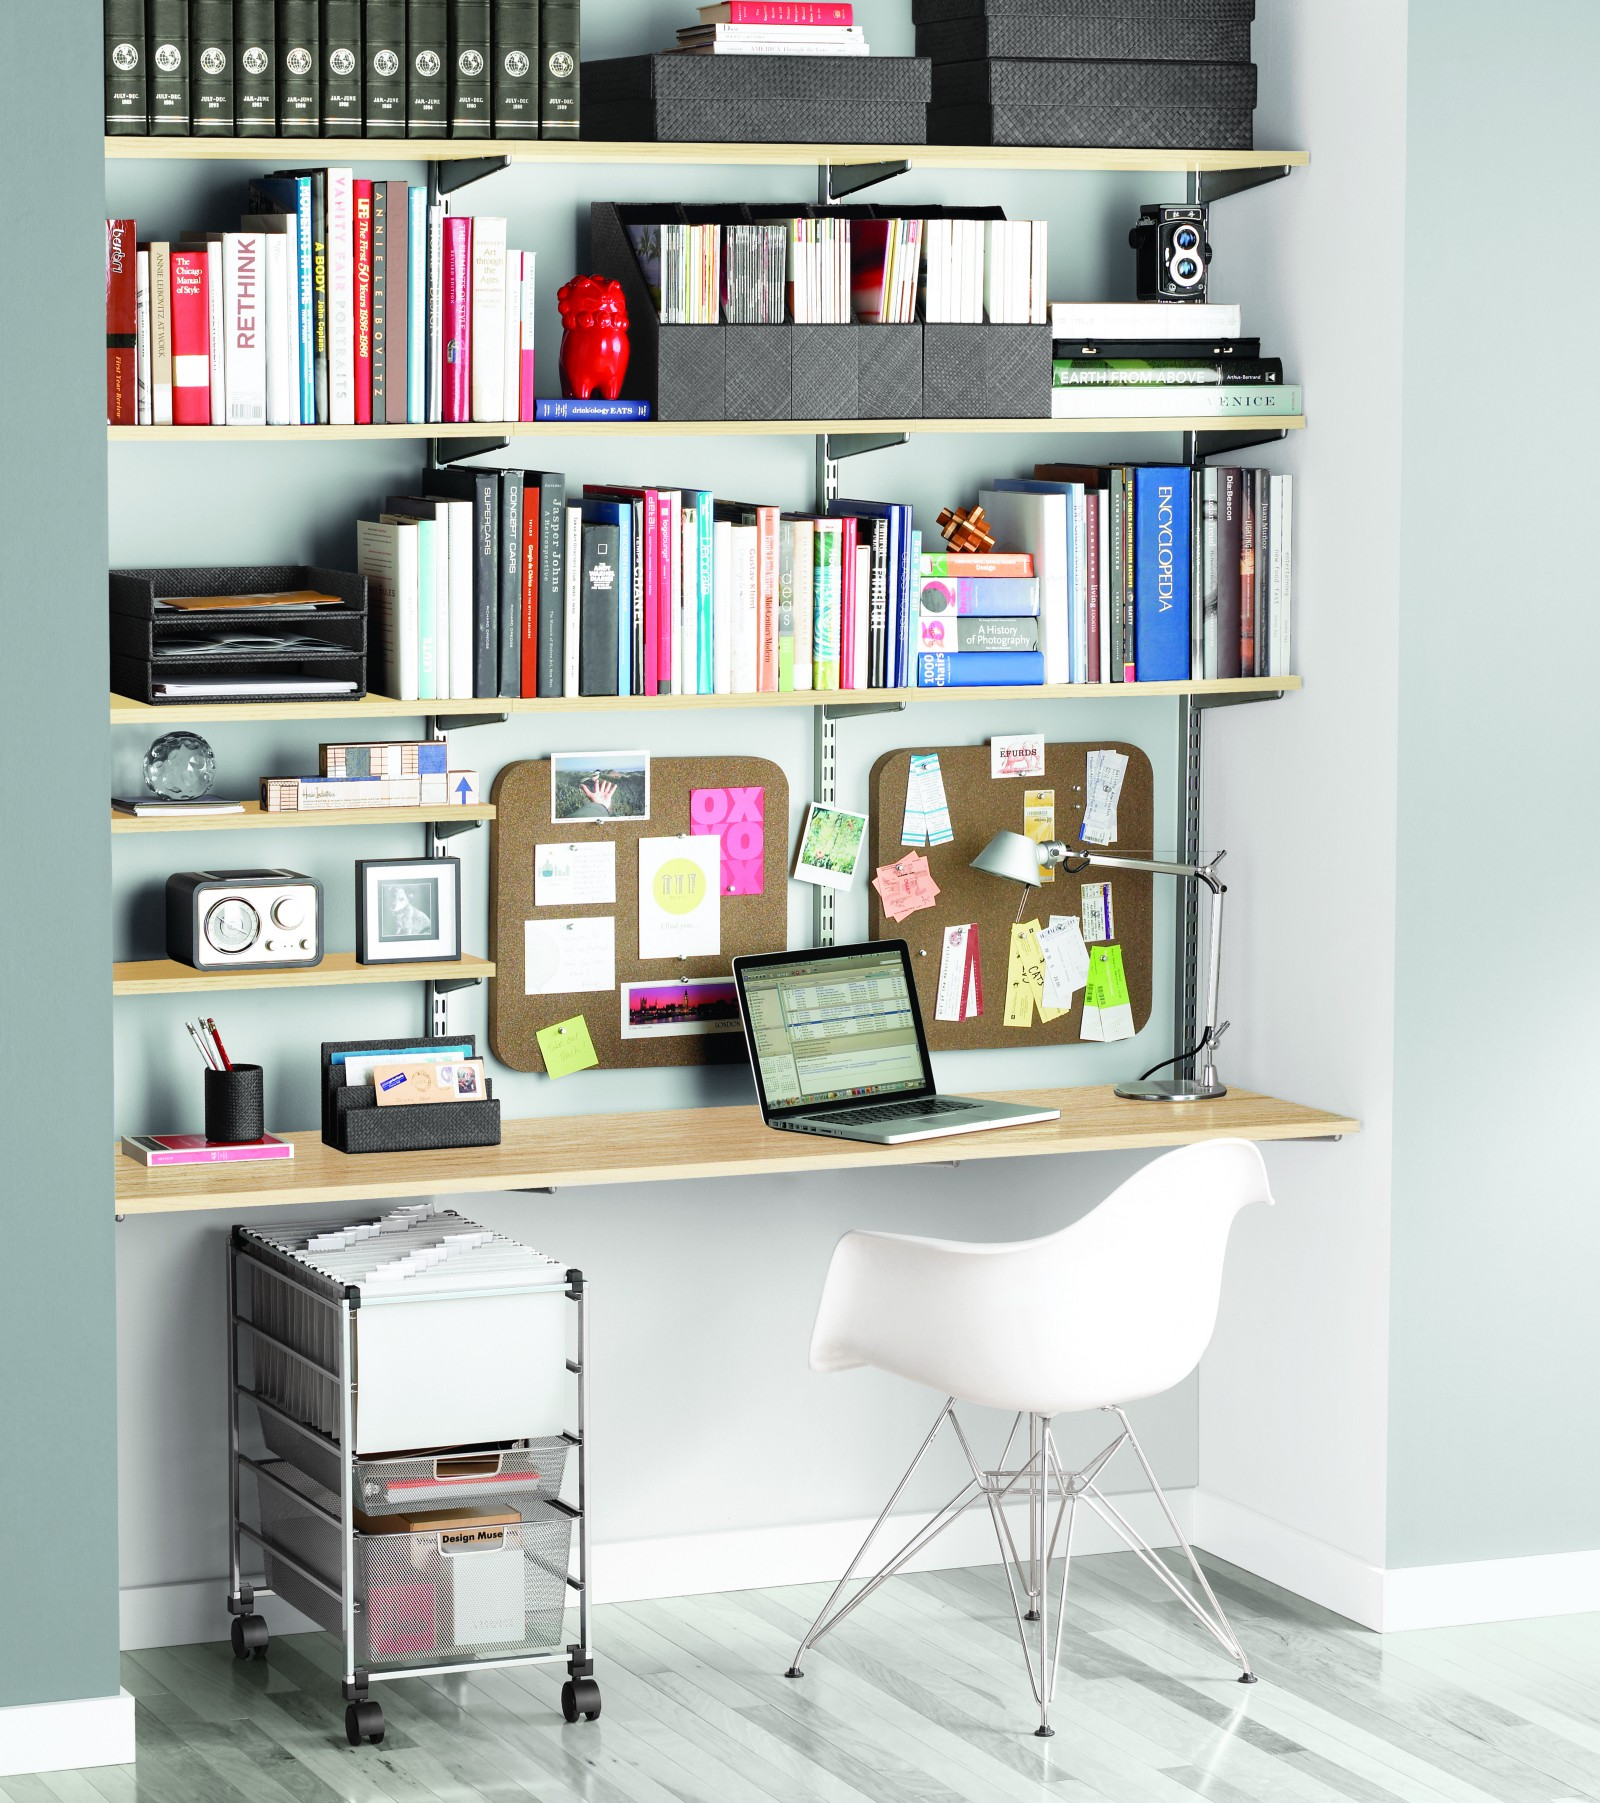 from amazing affordable the white size home adjustable that convertible sit height store of computer up sitting espresso lift modern for standing desktop crank inside trendesks riser electric design office to frame ergonomic desk full work stand header extension goes workstation container